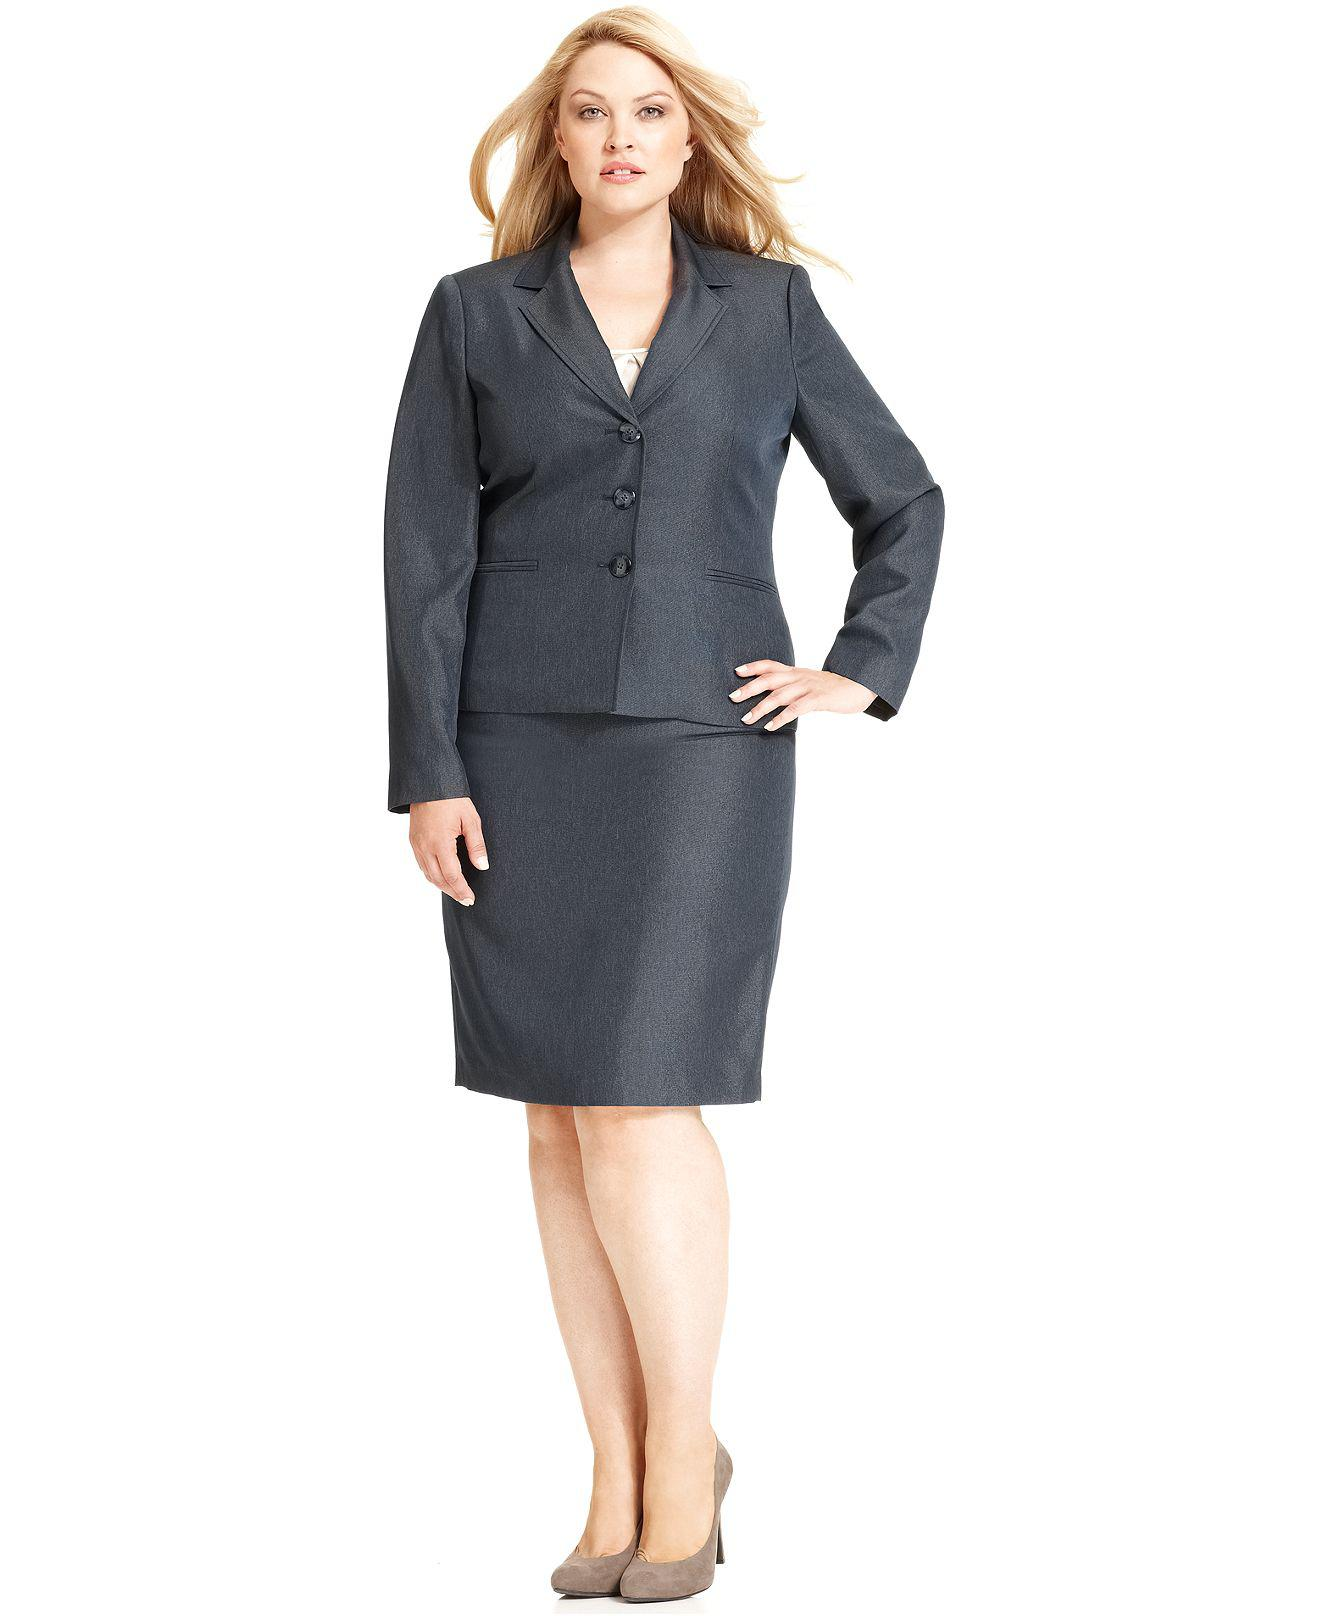 Plus Size Skirt Suit Gray Blazer & Skirt Women Business Suit ...